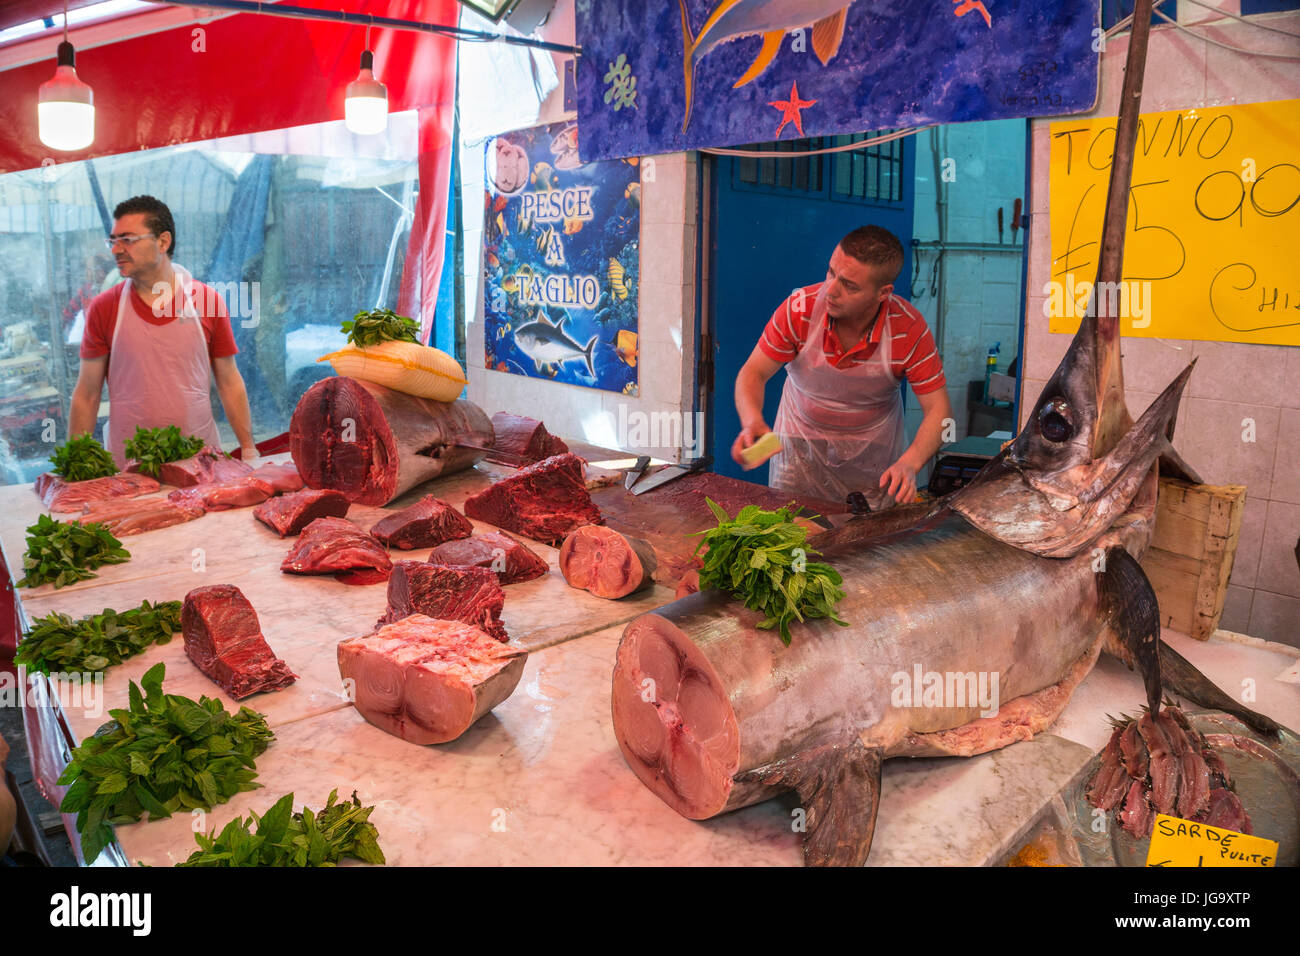 A fishmongers stall in The Ballaro Market in the Albergheria district of central Palermo, Sicily, Italy. - Stock Image